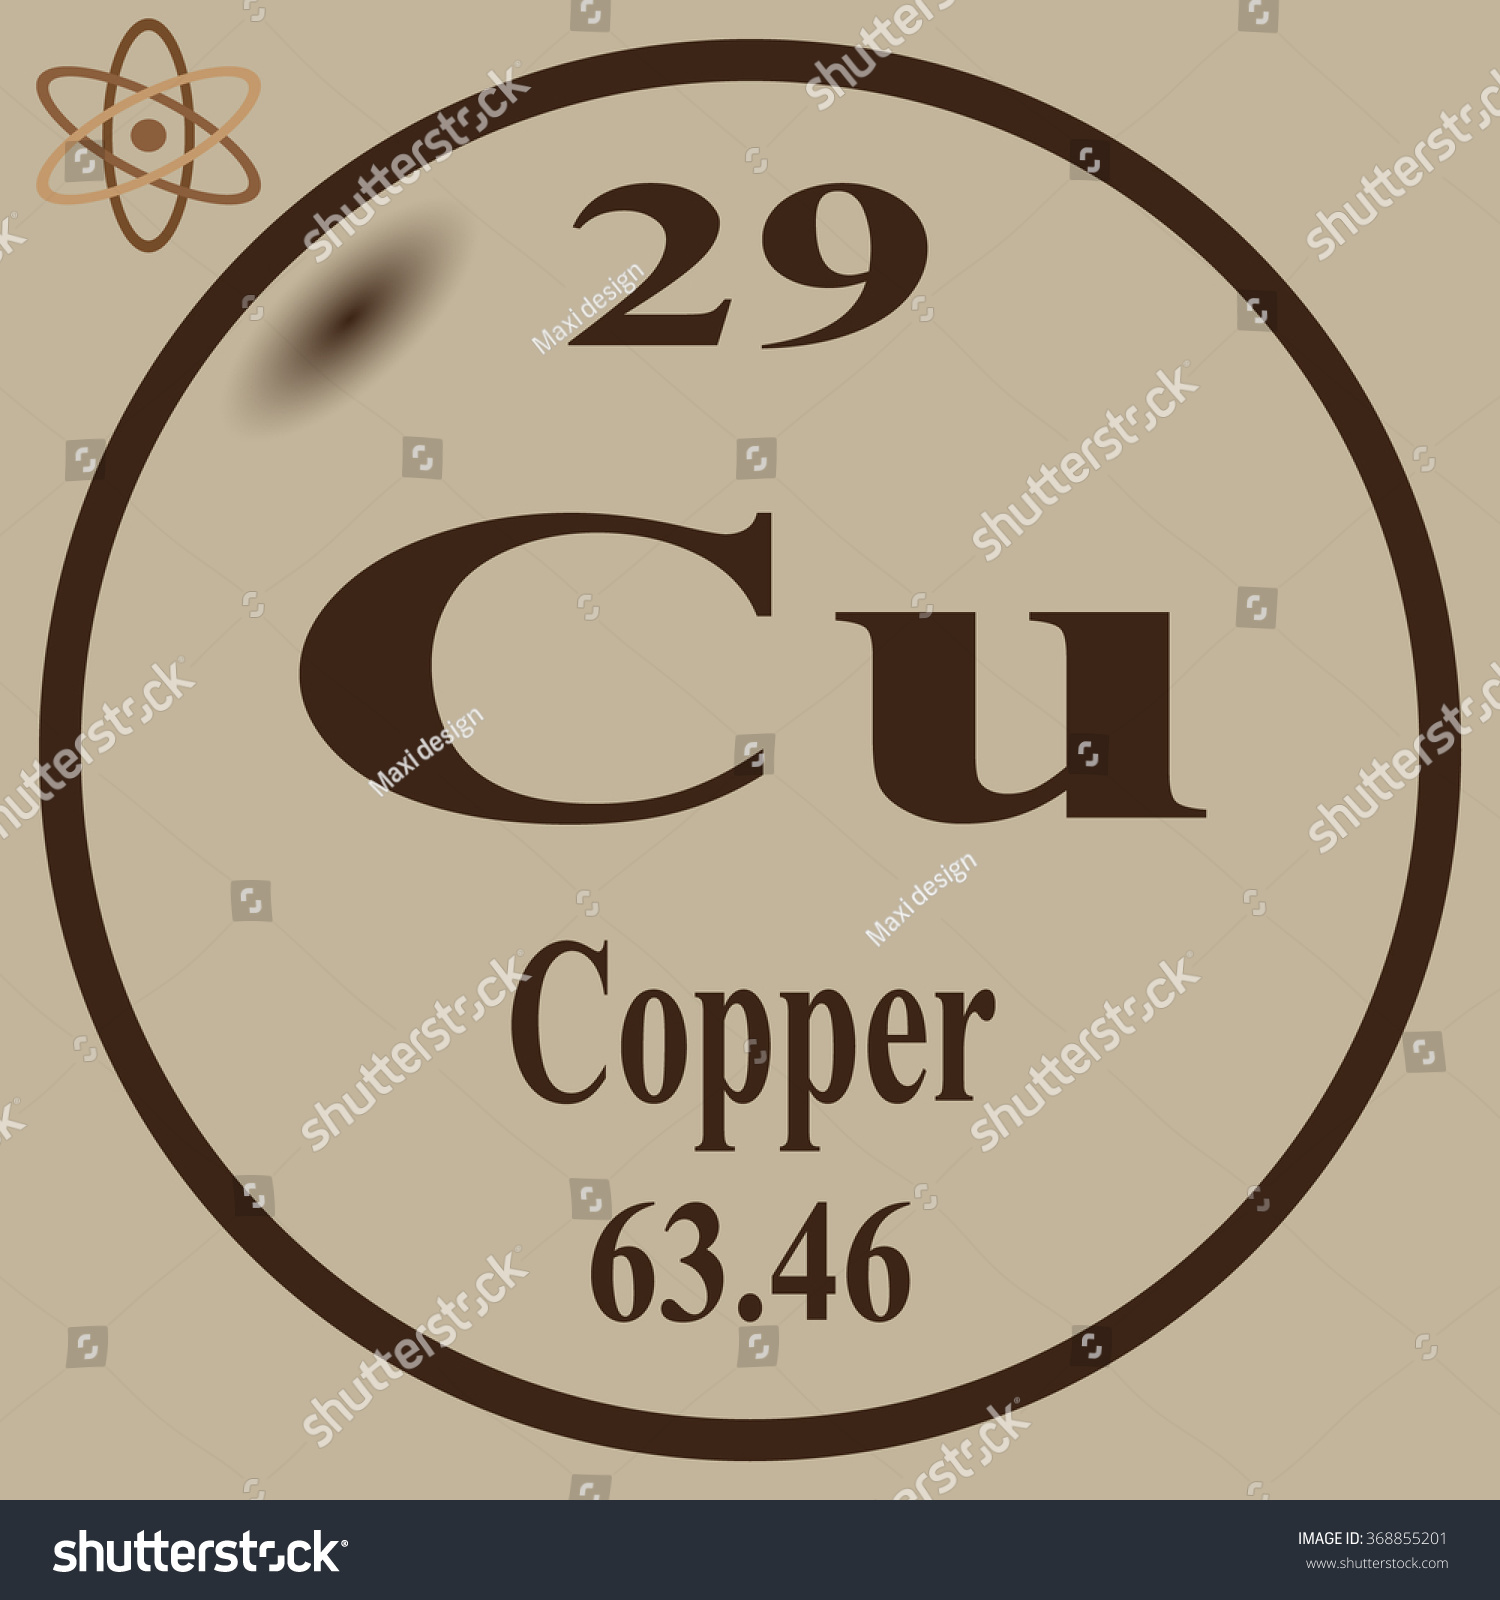 Periodic table elements copper stock vector 368855201 shutterstock periodic table of elements copper gamestrikefo Choice Image